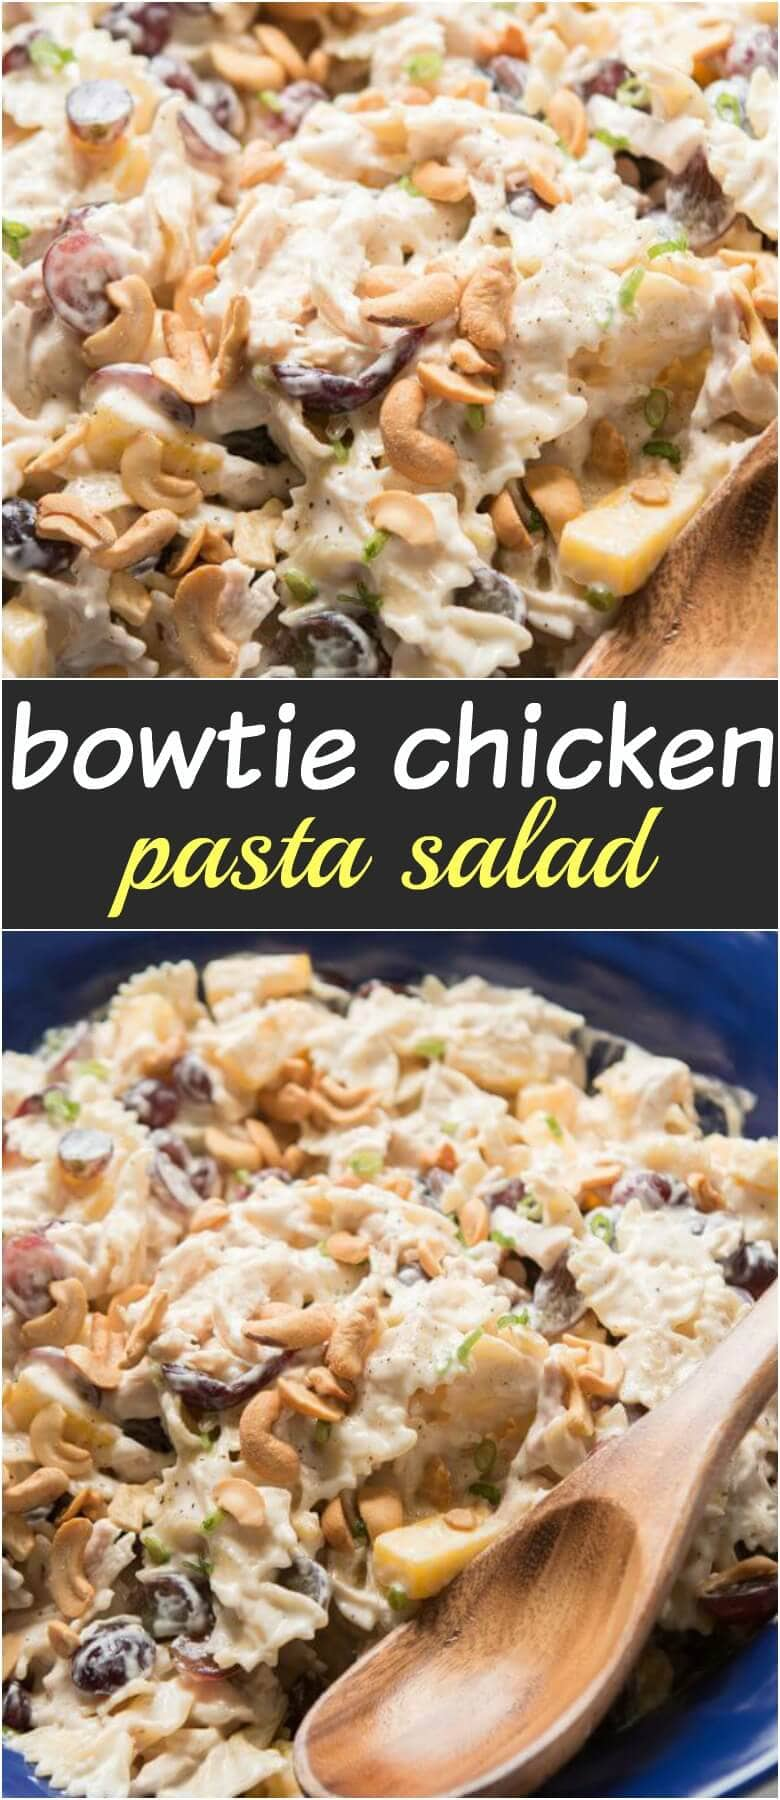 Bowtie chicken pasta salad is perfect for a BBQ. Creamy dressing, juicy pineapple and grapes, crunchy cashews and lots of chicken! ohsweetbasil.com